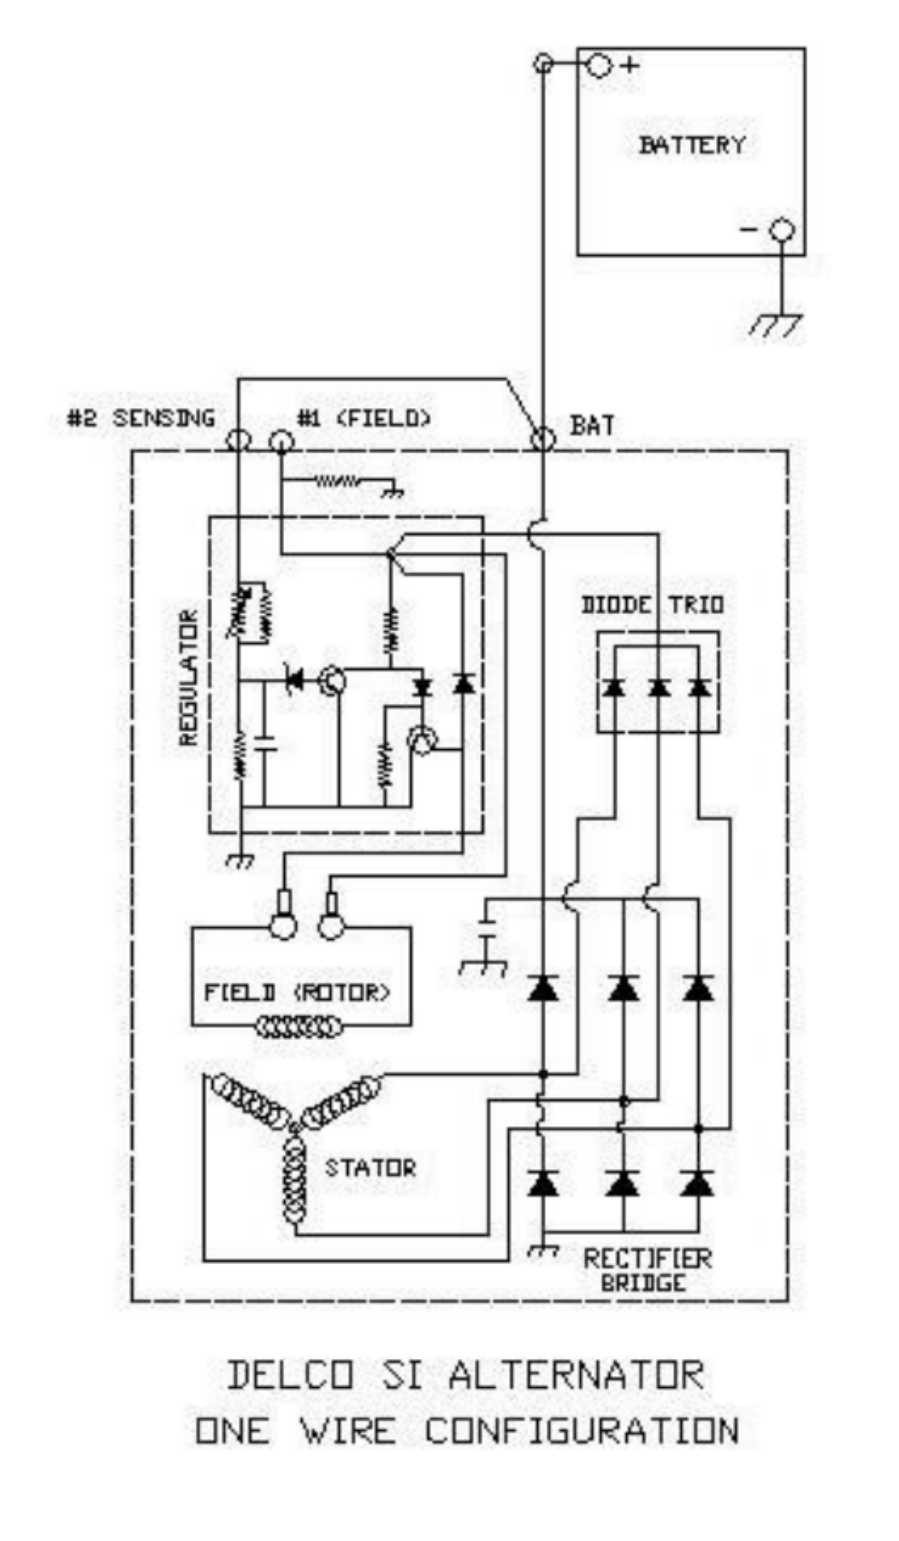 [CSDW_4250]   YW_7063] Acdelco Alternator Wiring Diagram Single Wire Schematic Wiring | Delco Regulator Wiring Schematic |  | Umize Penghe Isra Mohammedshrine Librar Wiring 101